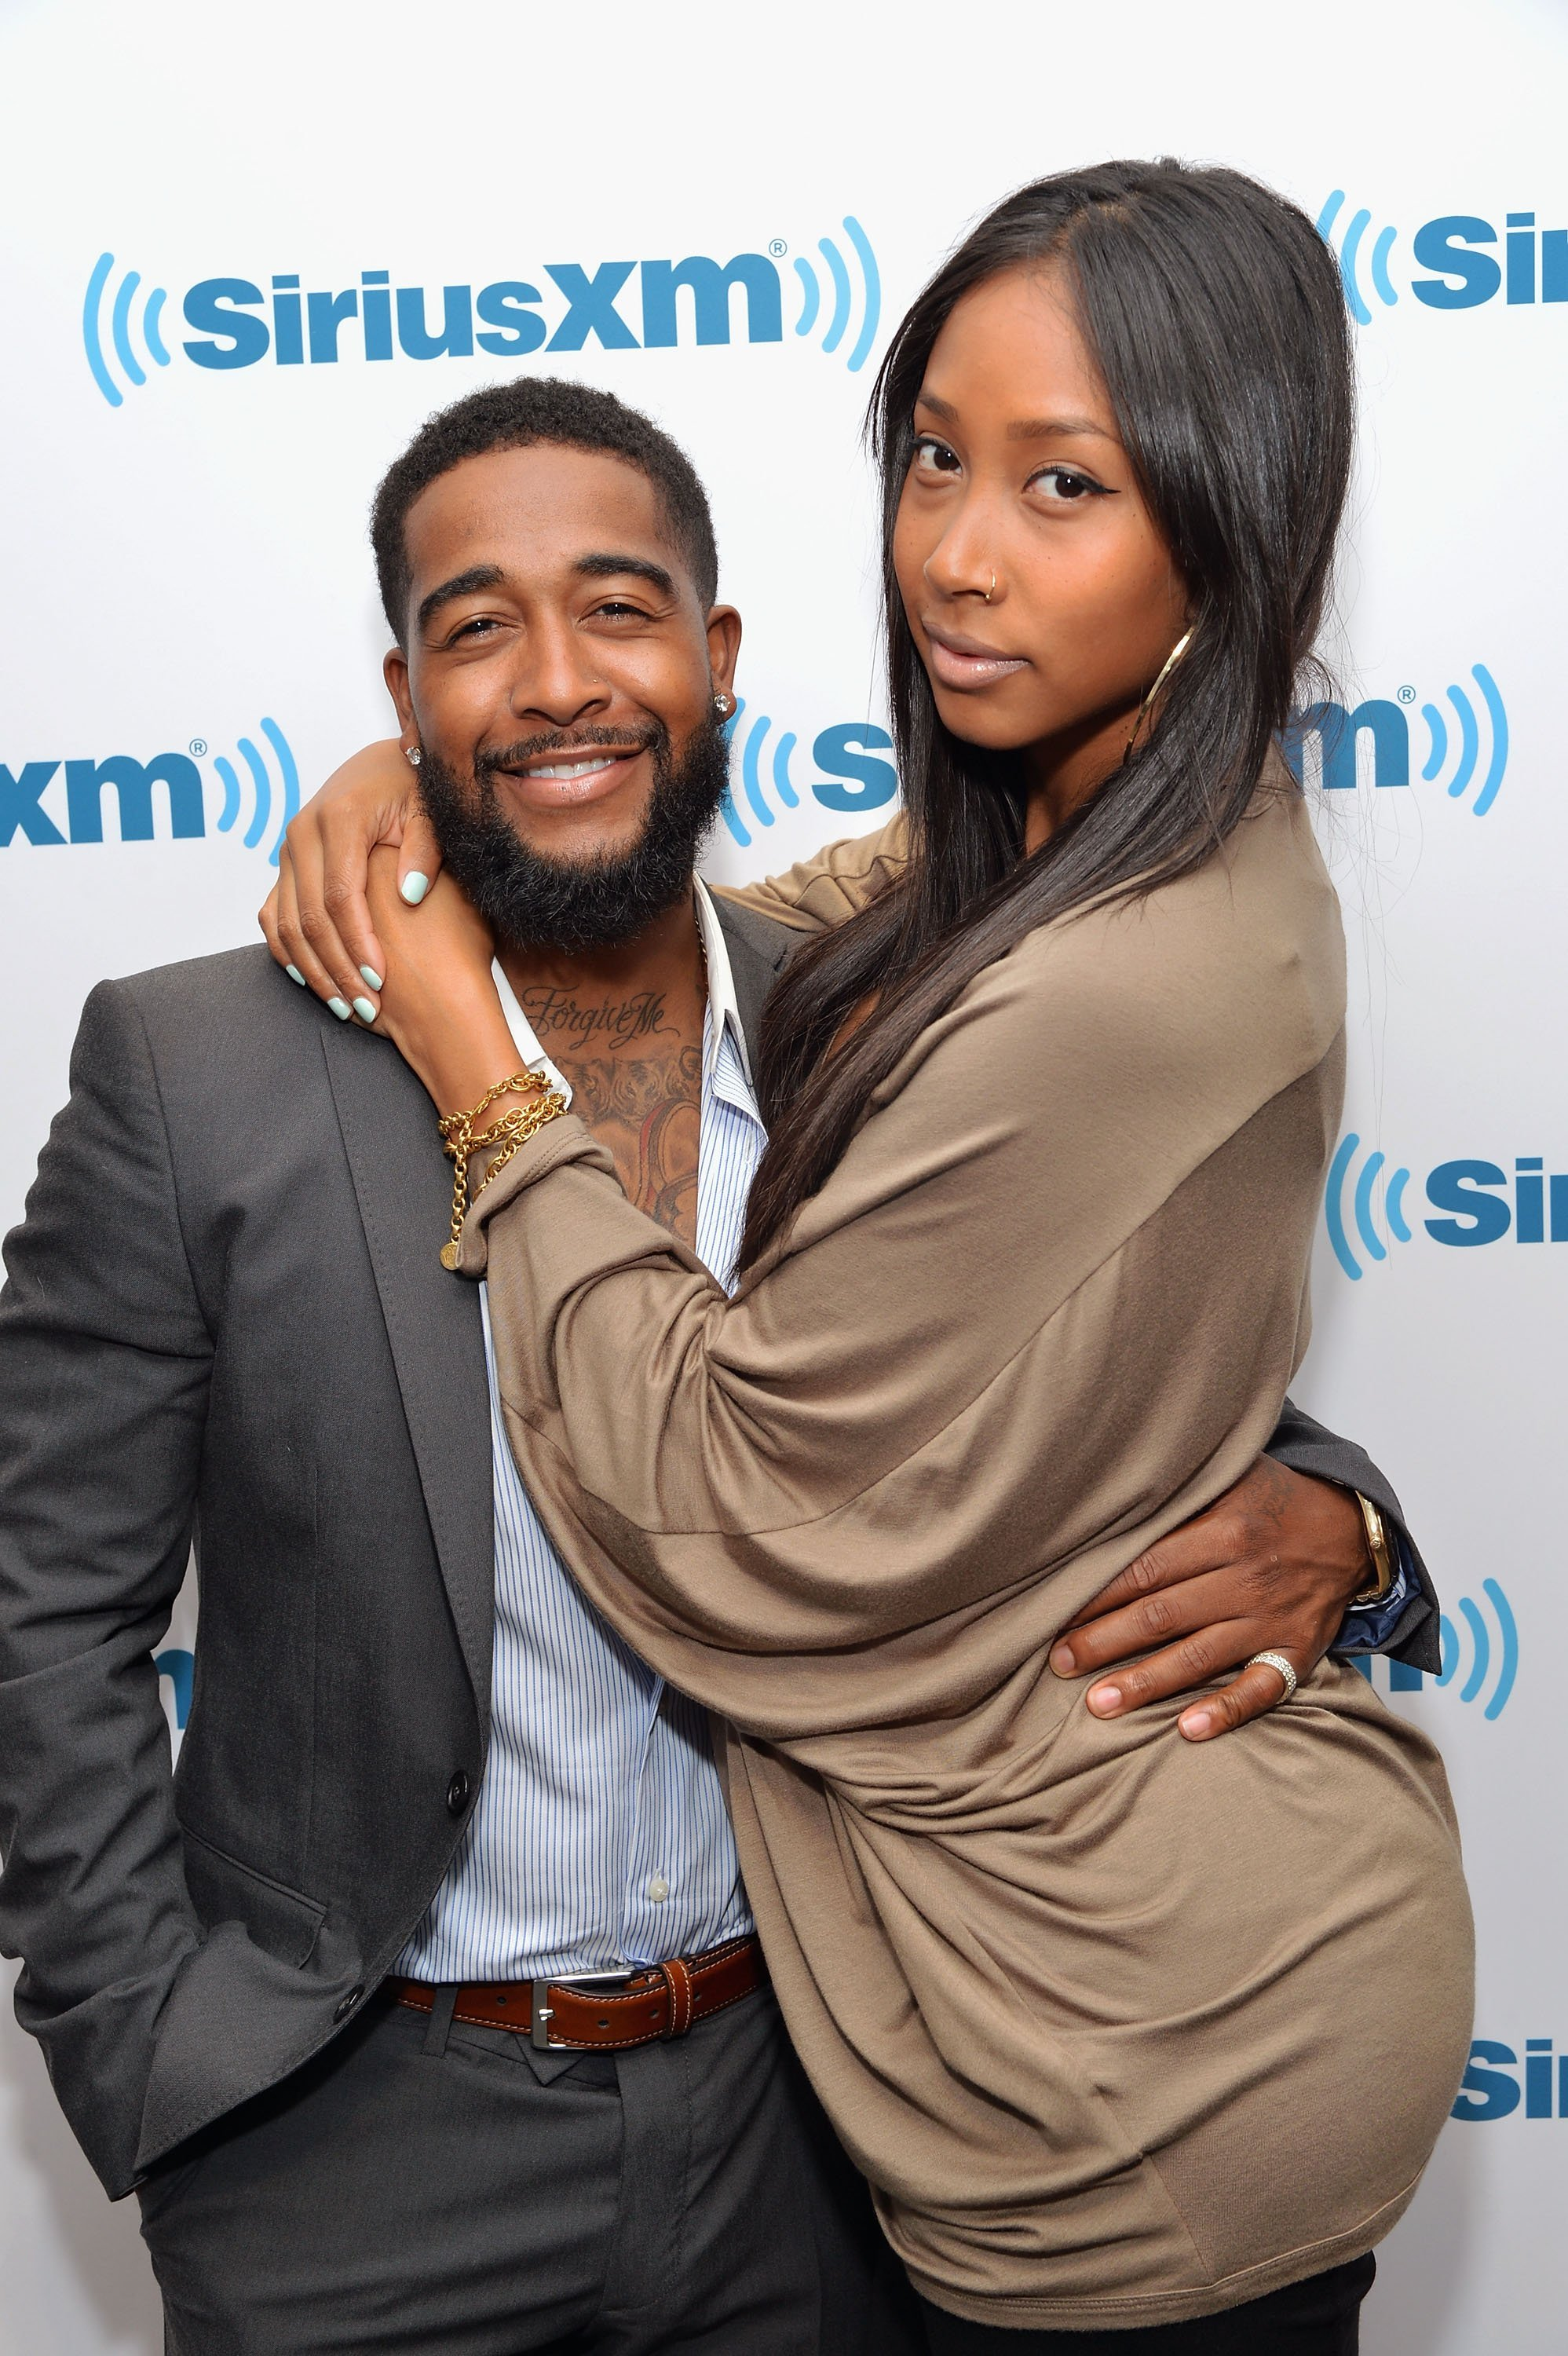 Omarion & Apryl Jones visit SiriusXM Studios on May 1, 2014 in New York City. |Photo: Getty Images